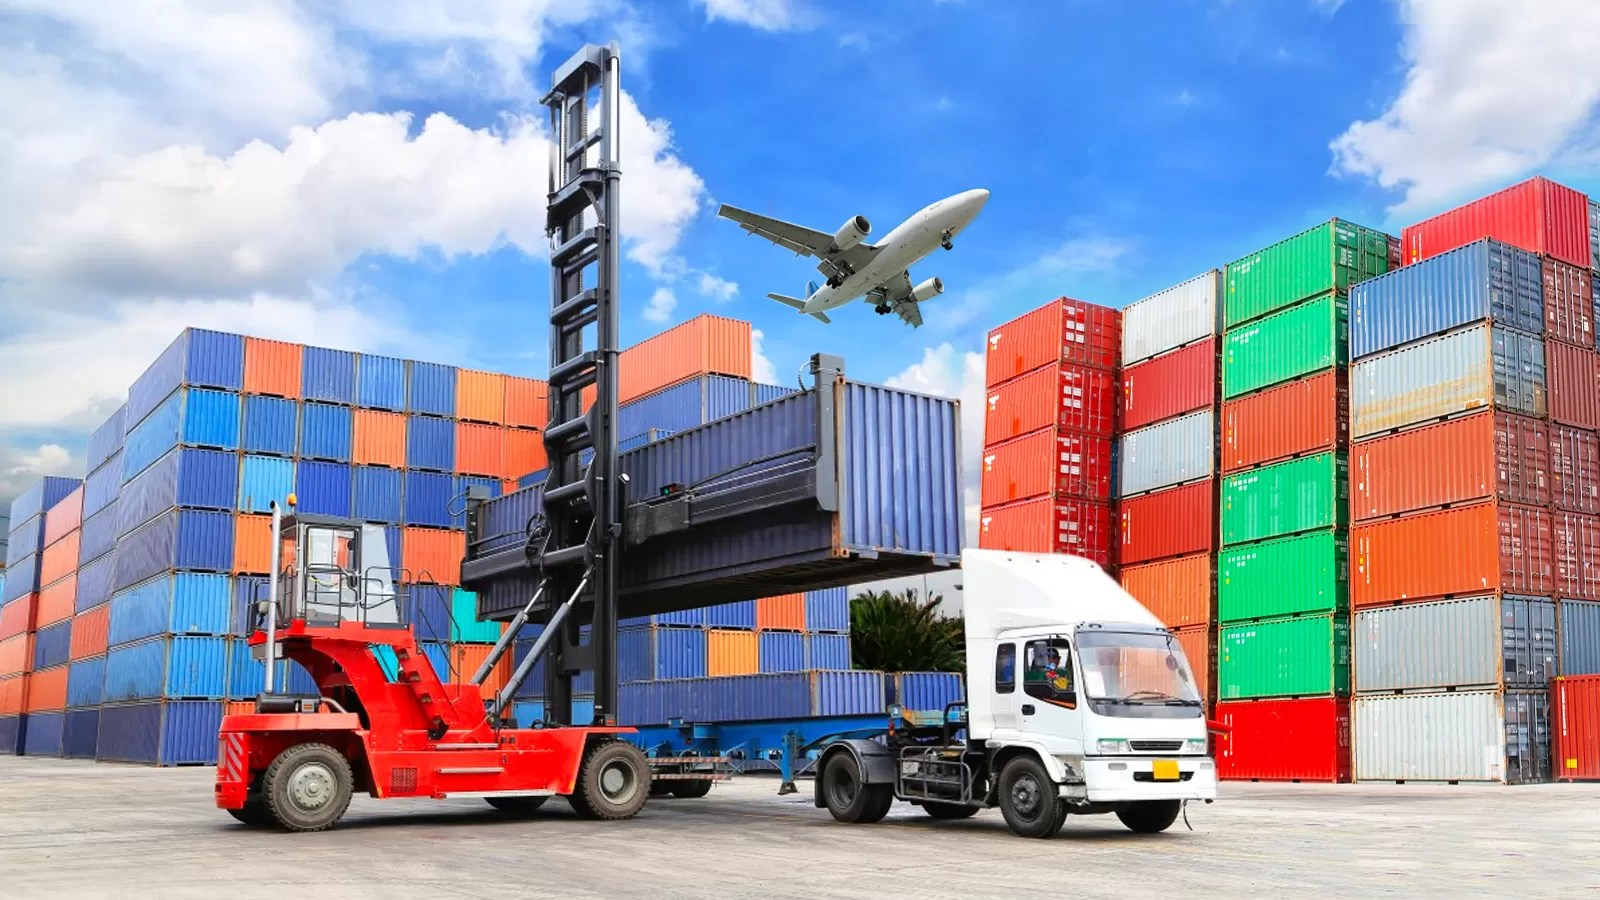 Freight Forwarder & NVOCC: Who They Are & How Are They Different From Each Other?